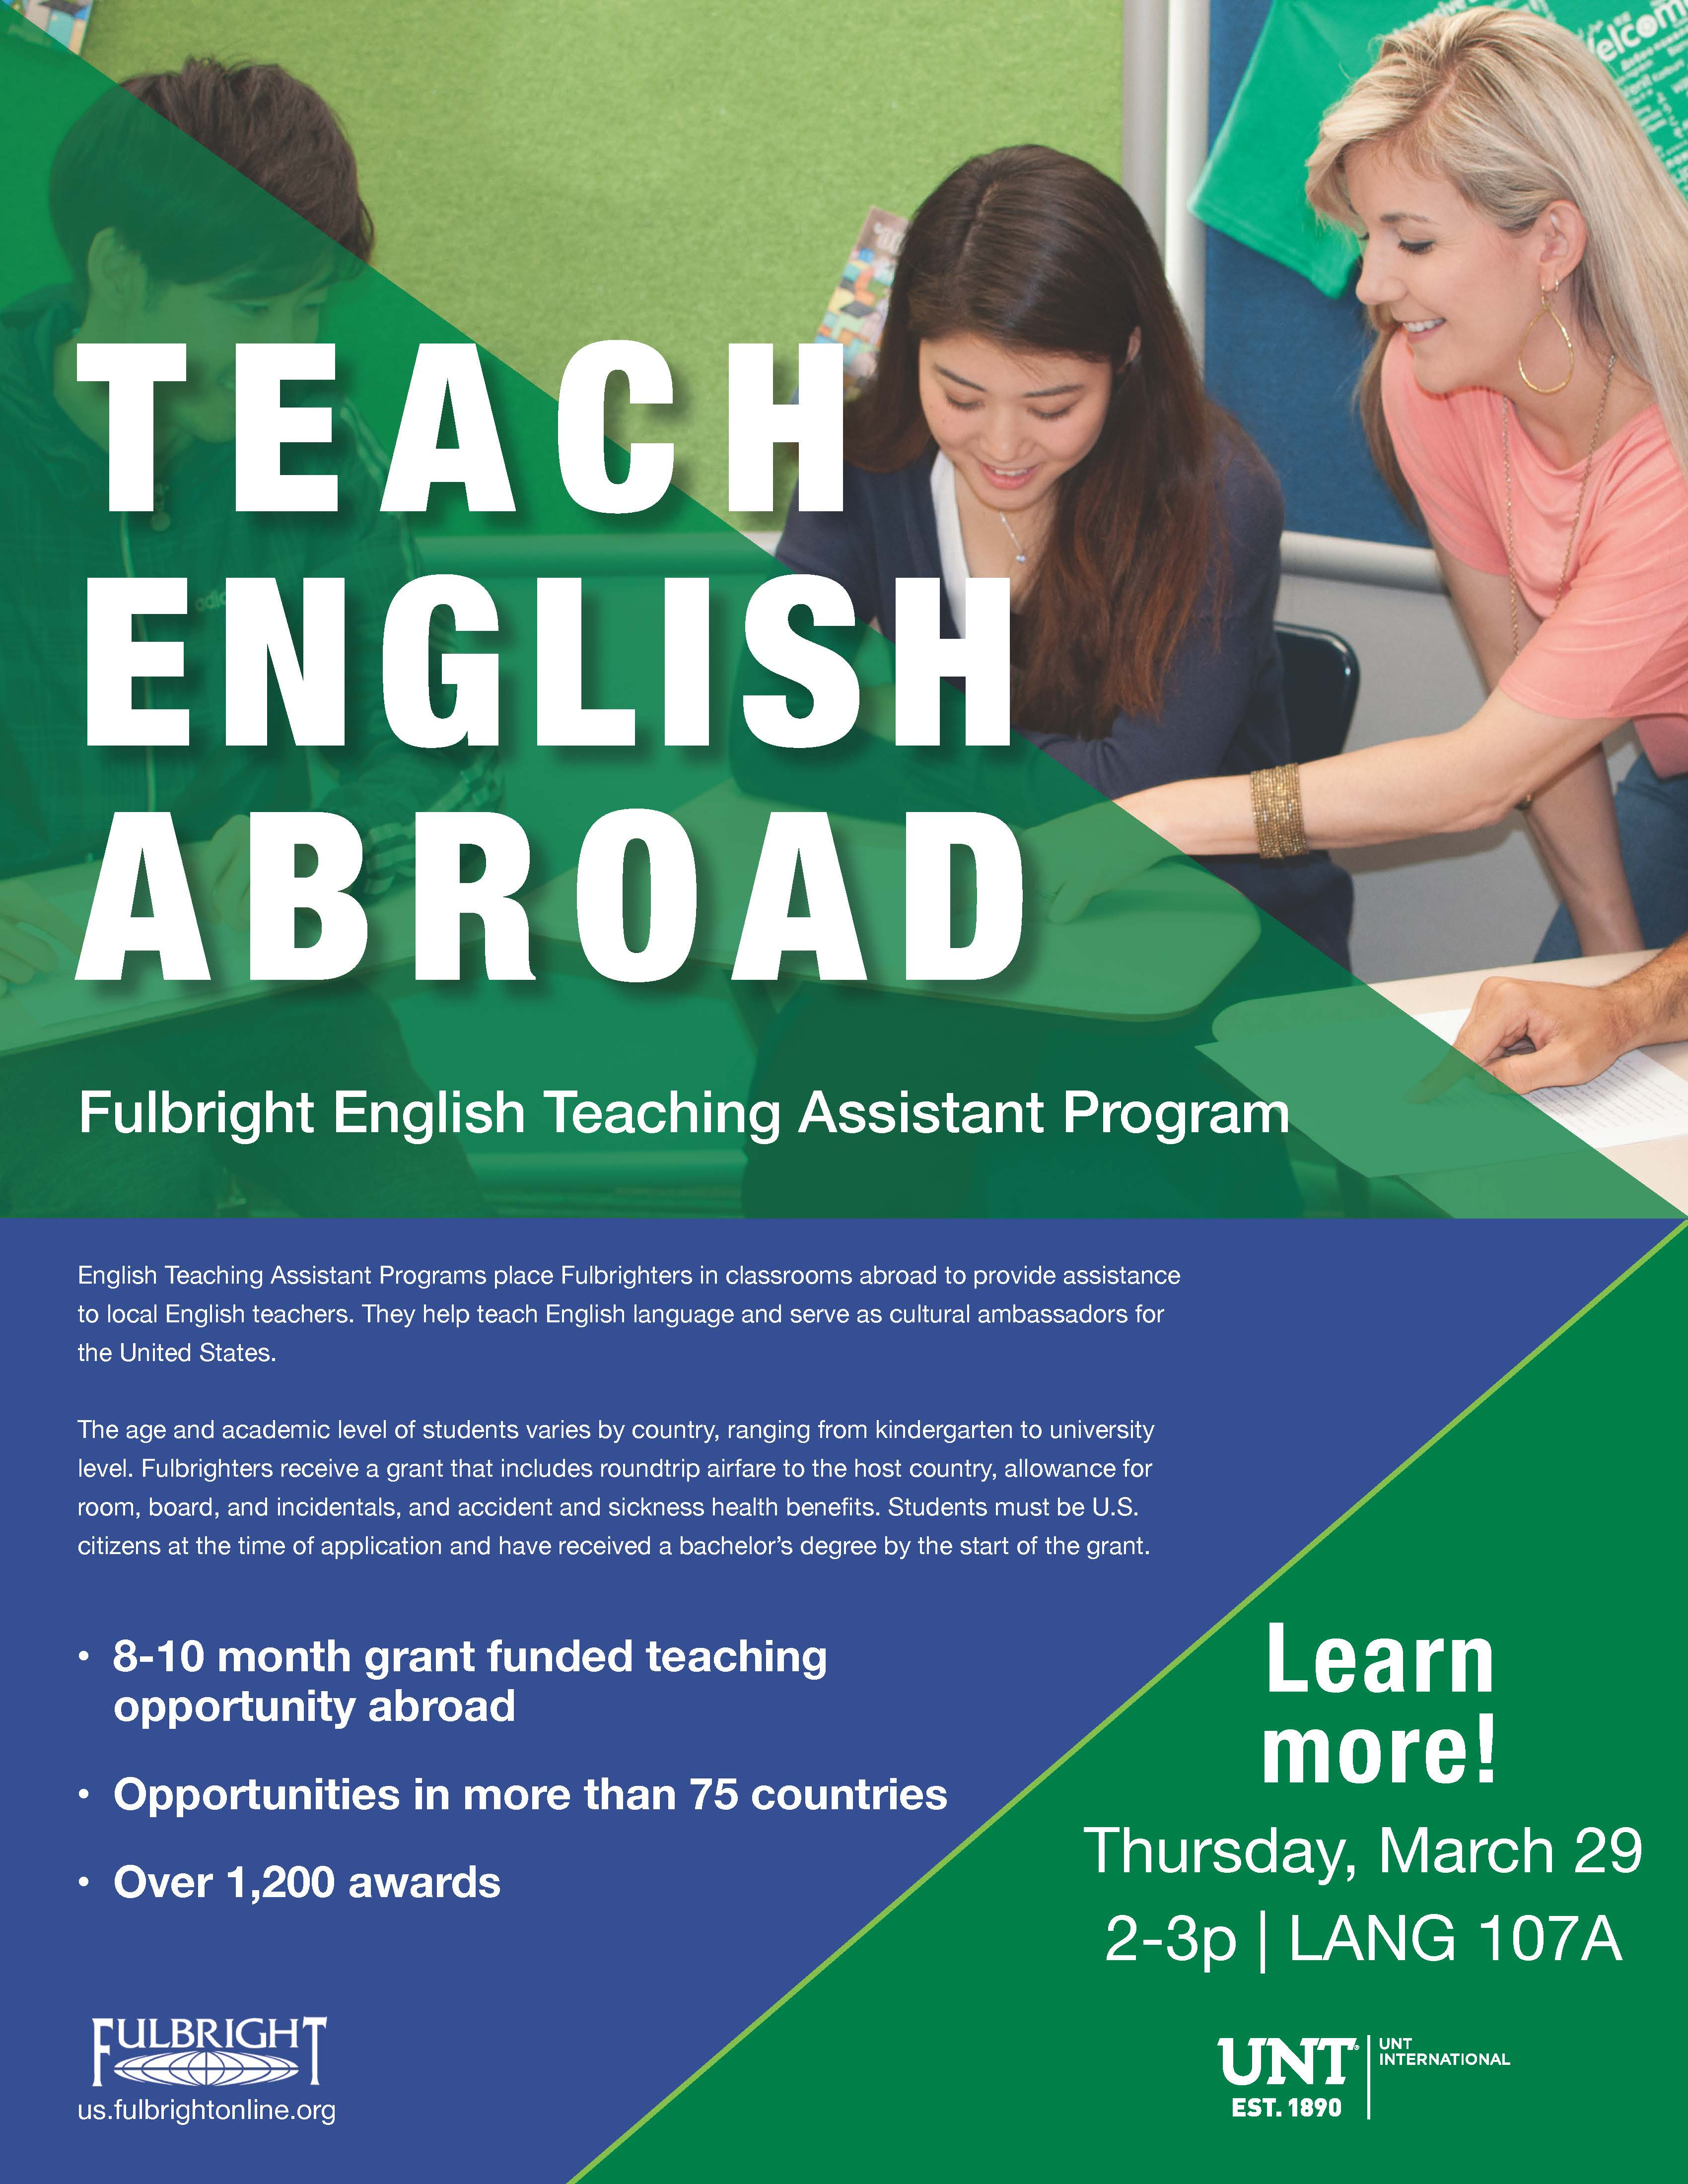 Unt Financial Aid >> Fullbright info session come learn about teaching abroad! | World Languages, Literatures, & Cultures